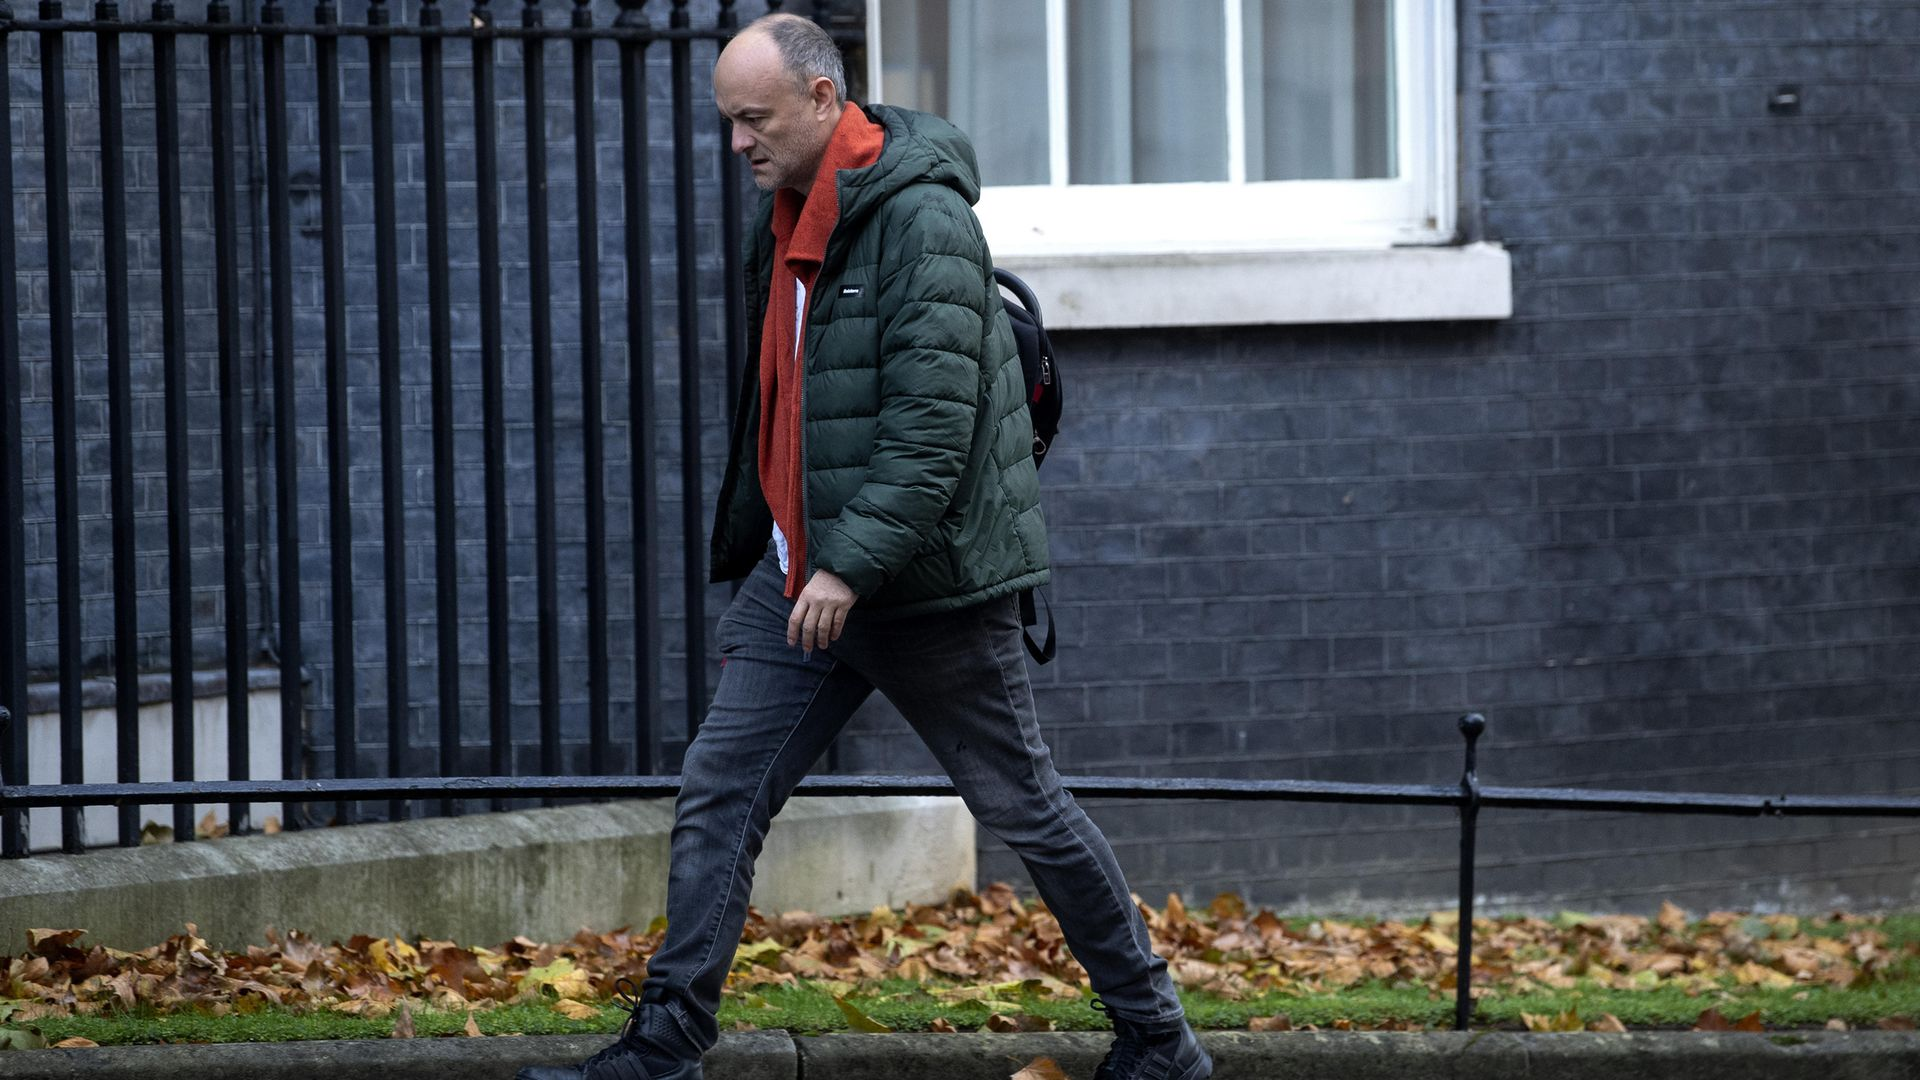 Former senior aide to the prime minister Dominic Cummings in Downing Street - Credit: PA